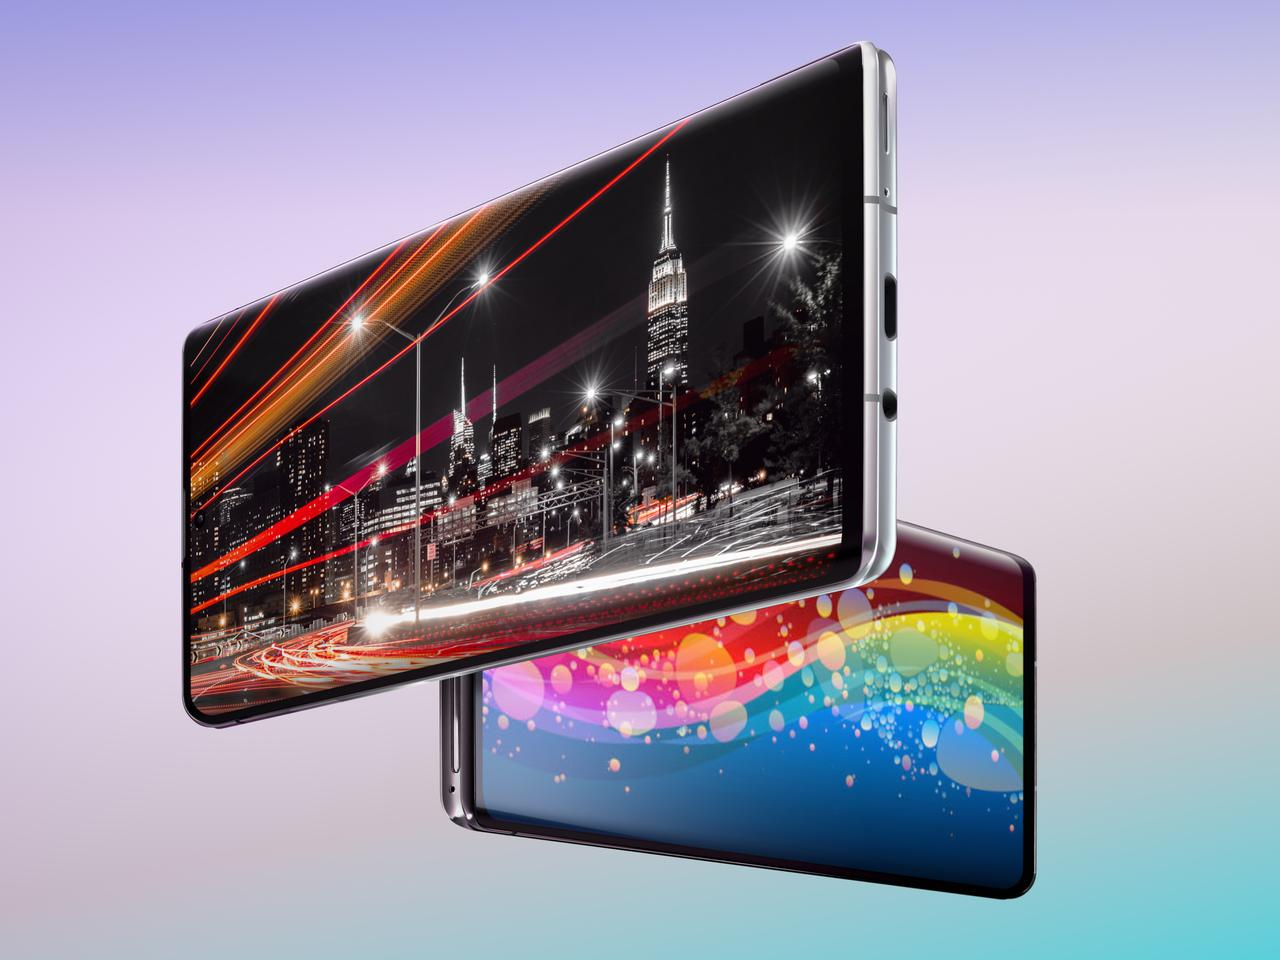 The Aquos R6 features a 240-Hz WUXGA OLED display, with 20 million:1 contrast and 2,000-nits brightness